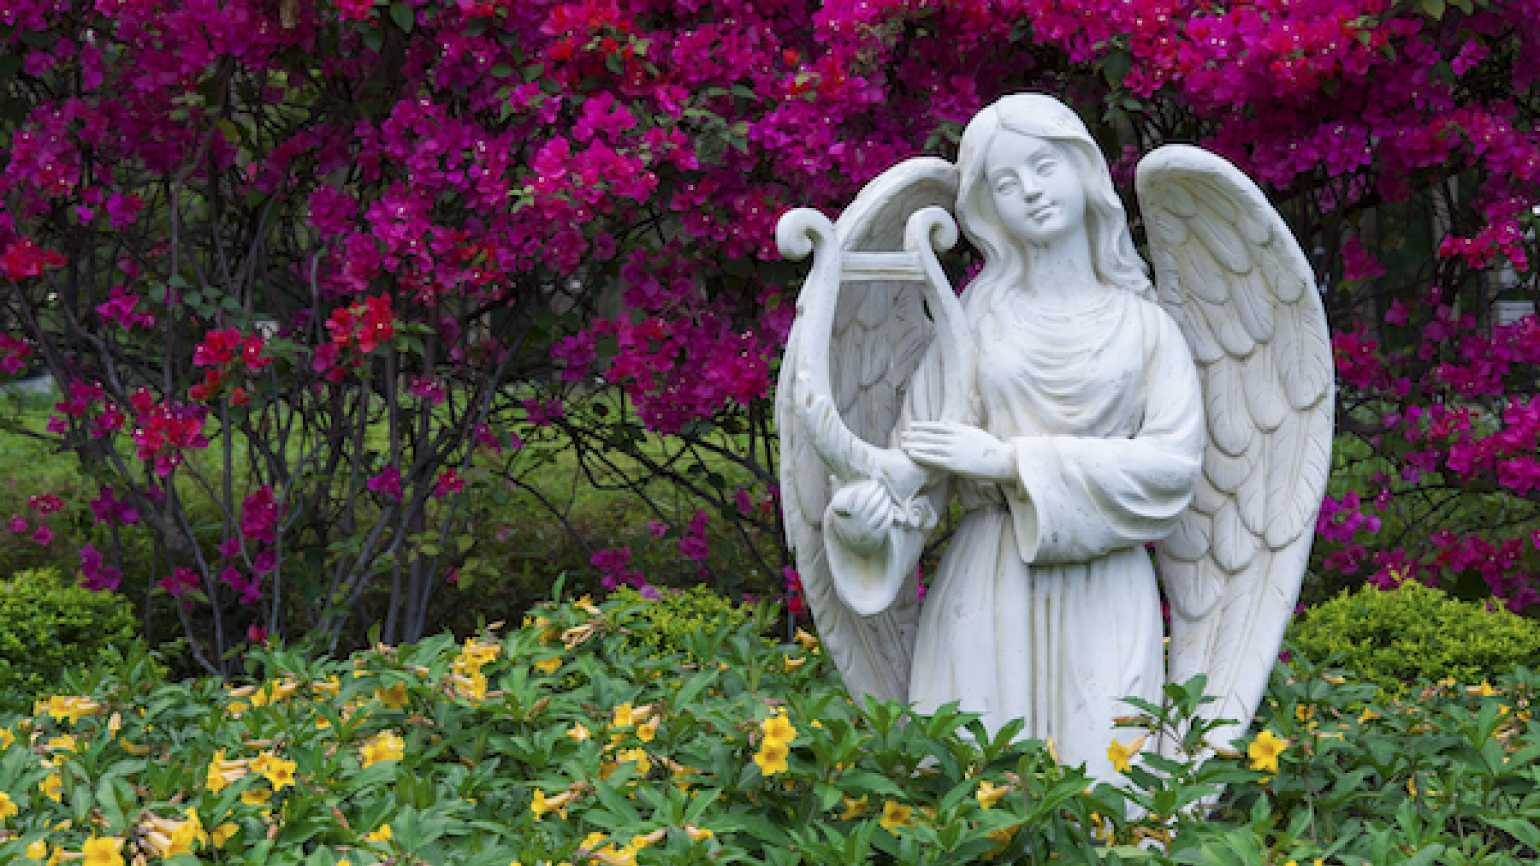 Send Angels on Earth magazine your story about seeing an angel.